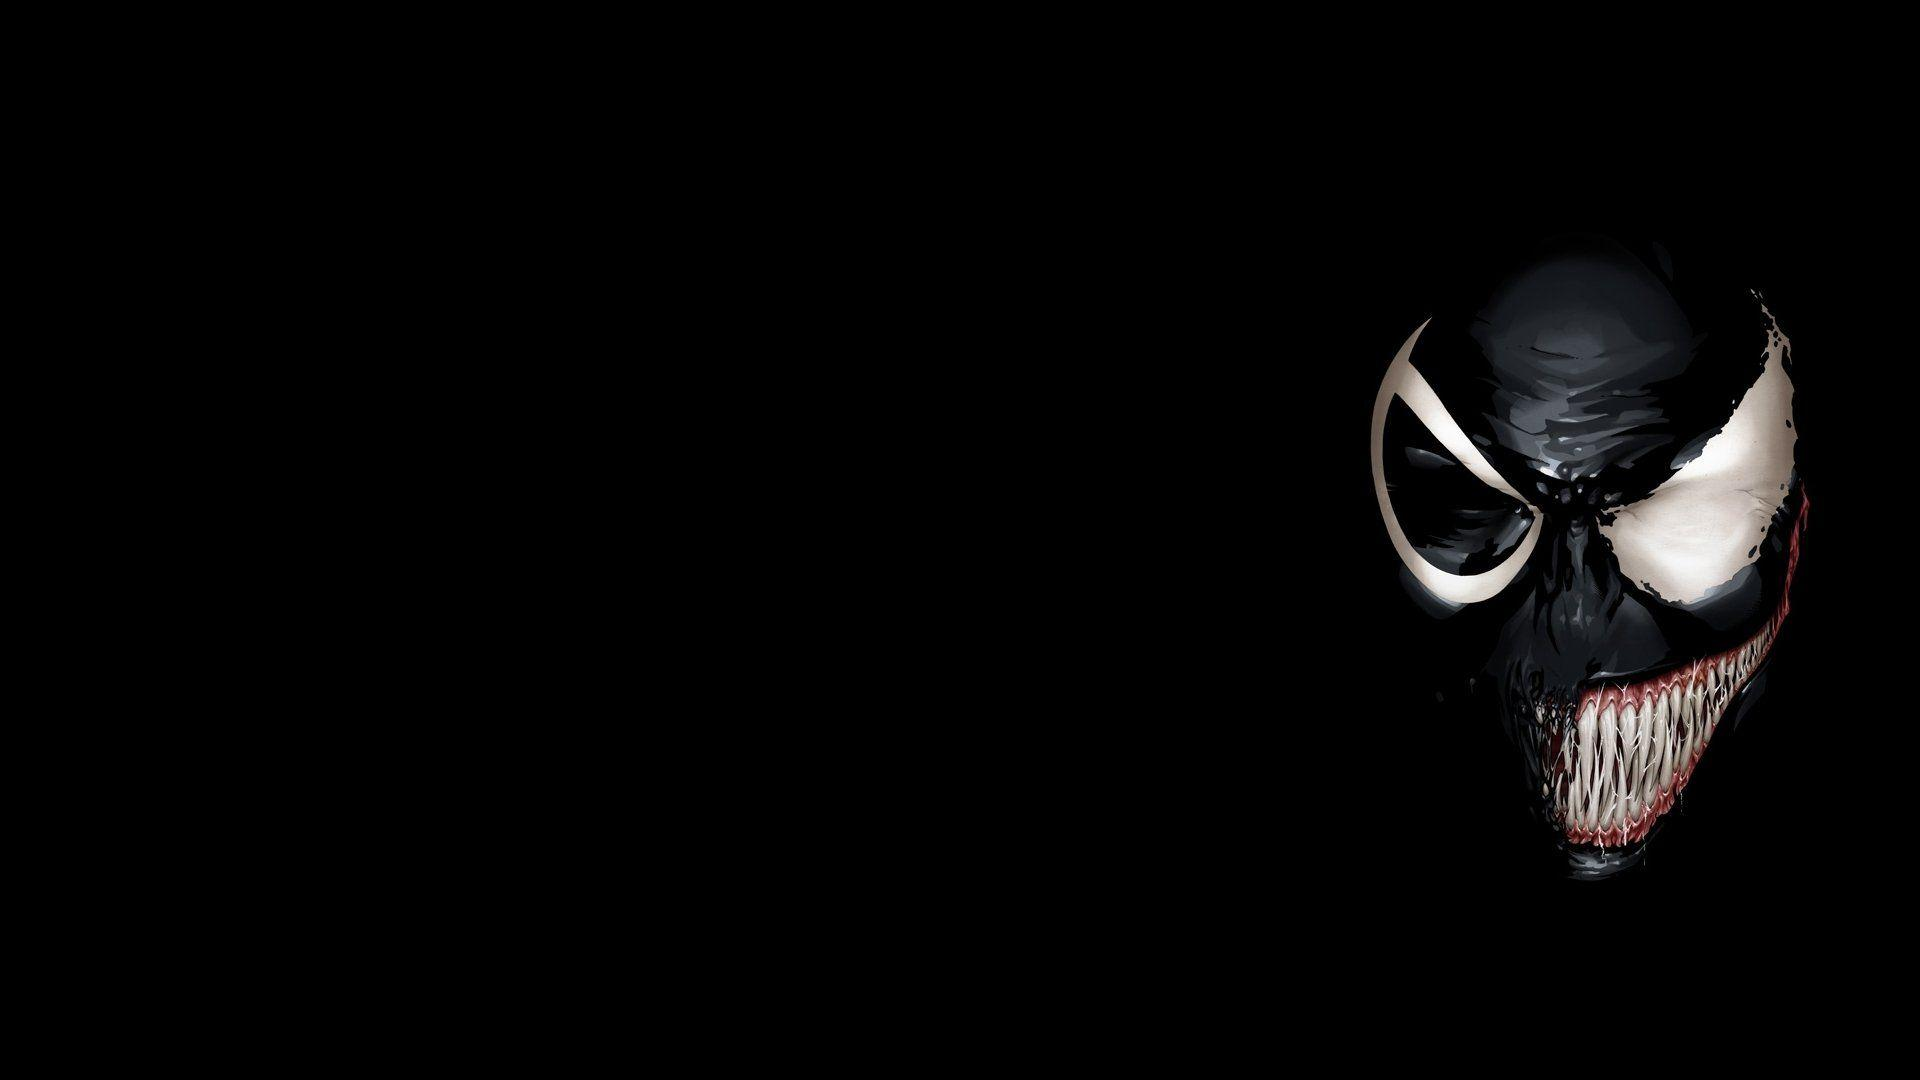 Venom Movie Wallpapers Wallpaper Cave